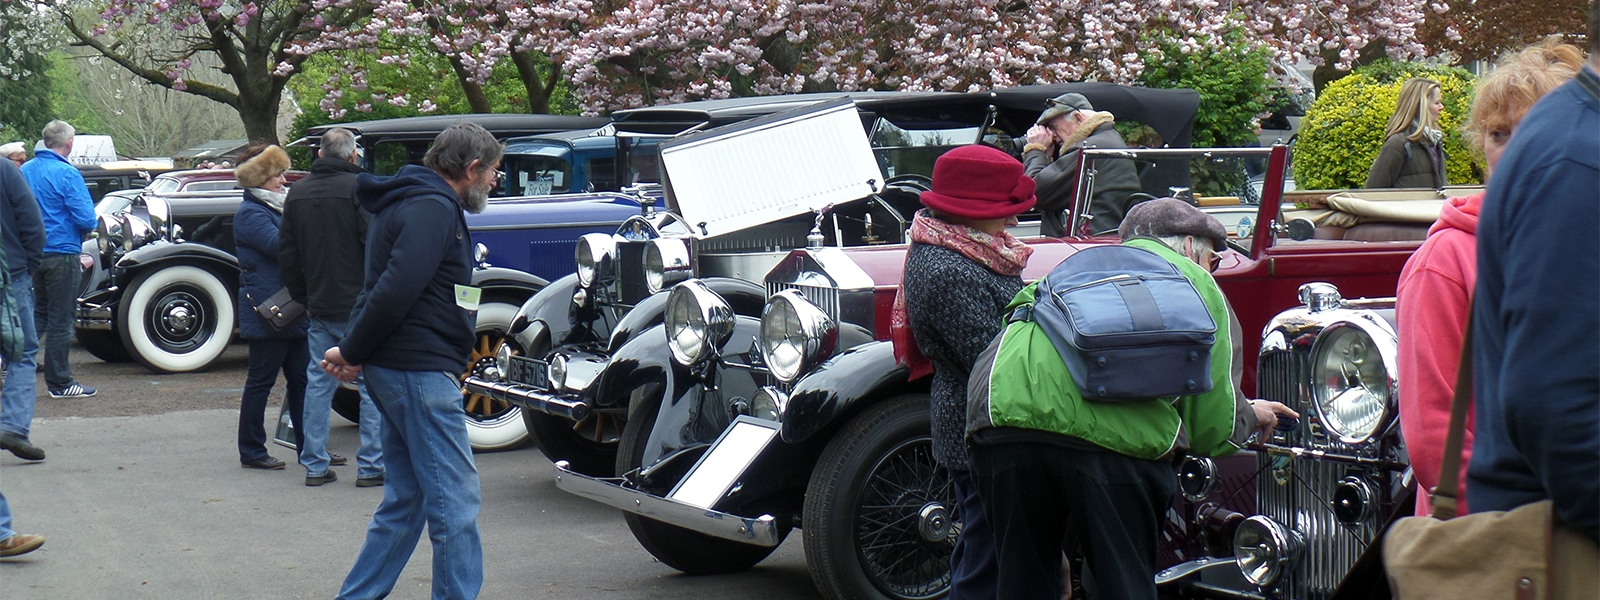 Wheelnuts Classic Car Show St Roses - Classic car show today near me